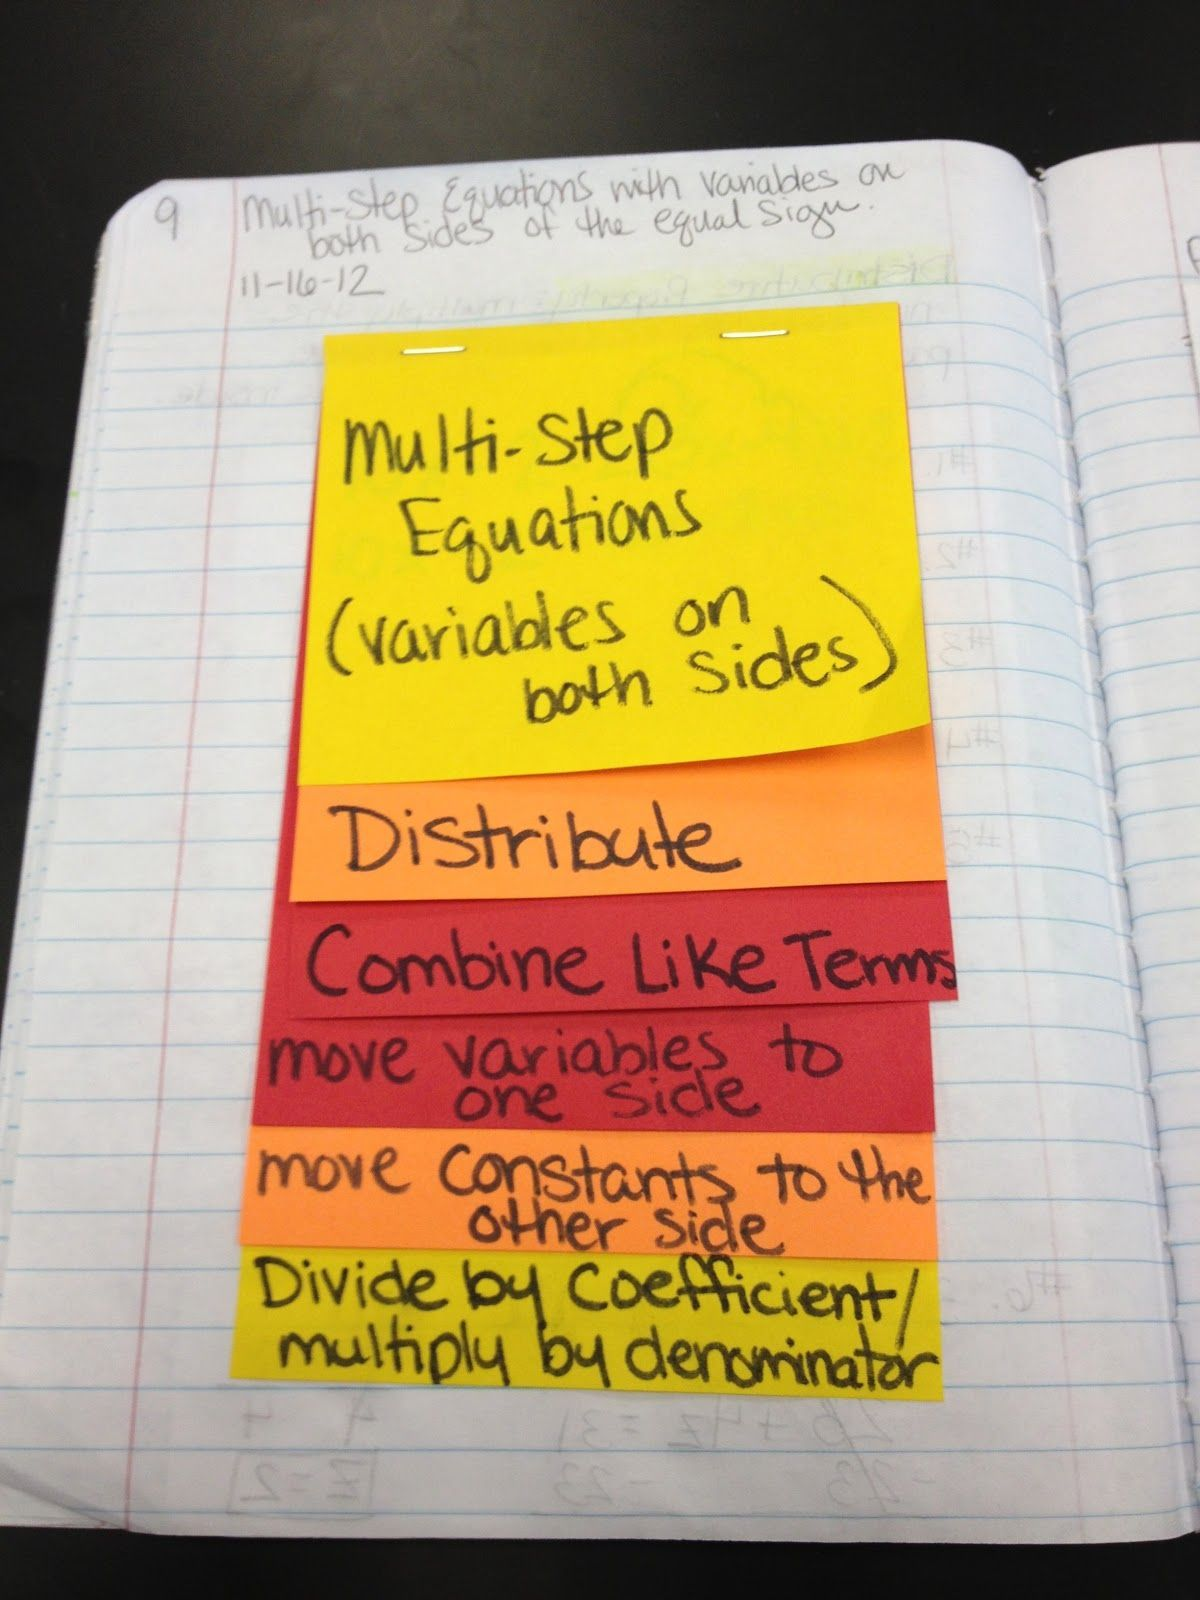 17 Best Images About Math Linear Equations On Pinterest Algebra Projects,  Quadratic Function And Activities